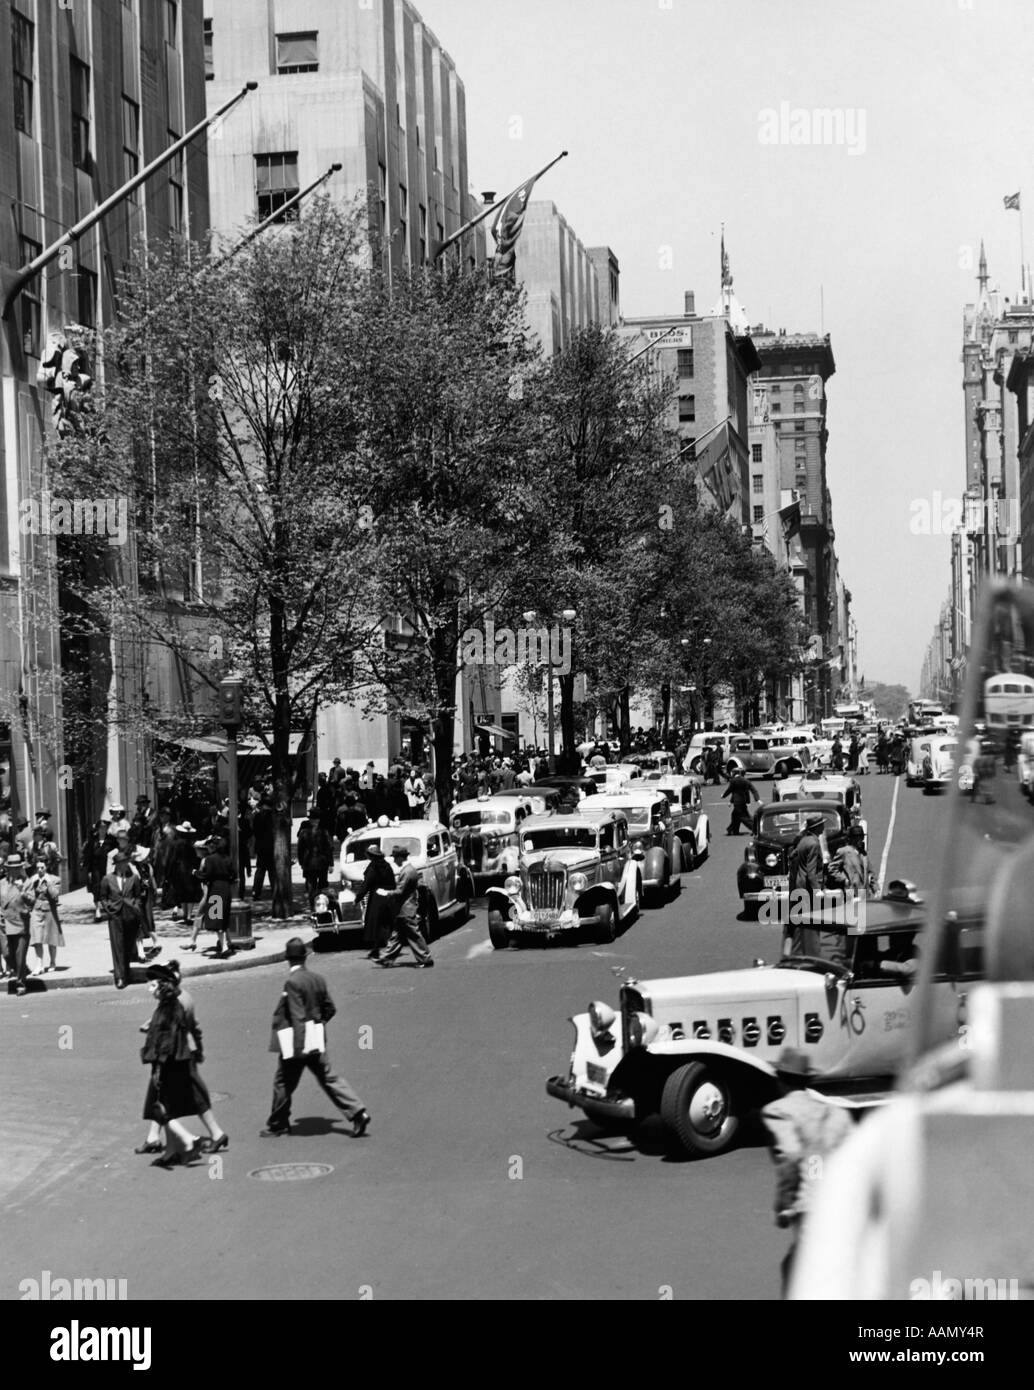 1930s 1940s 1939 ROCKEFELLER CENTER AUTOMOBILE AND PEDESTRIAN TRAFFIC FIFTH AVENUE NEW YORK CITY USA - Stock Image